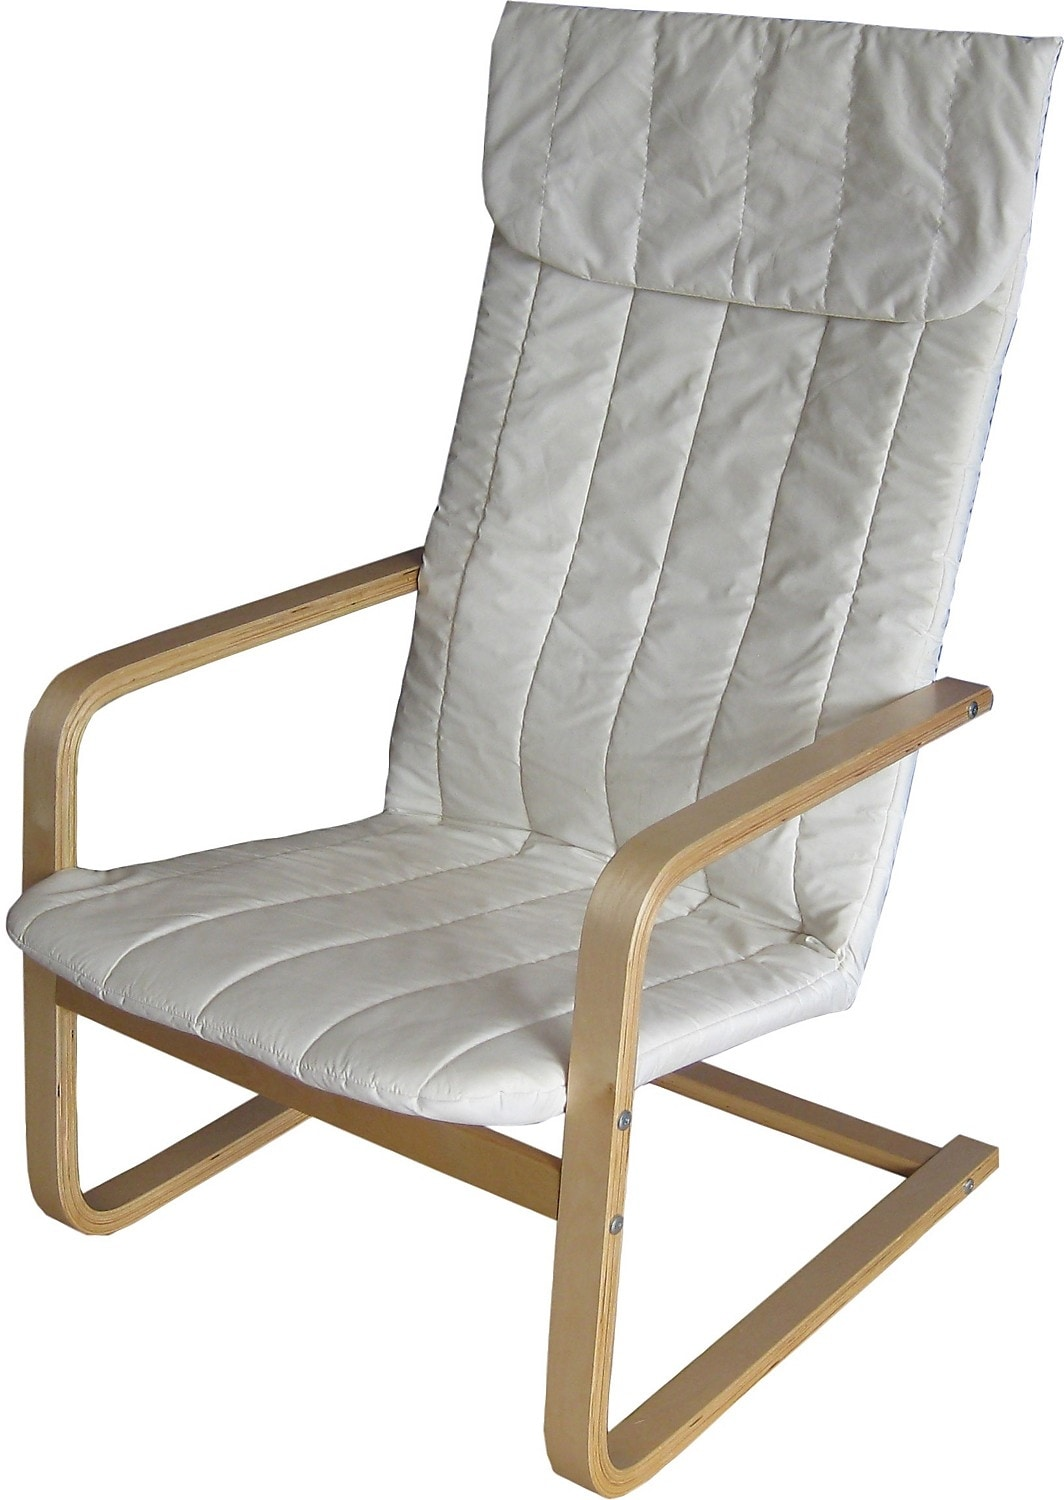 Living Room Furniture - Valko Bentwood Chair – Warm White